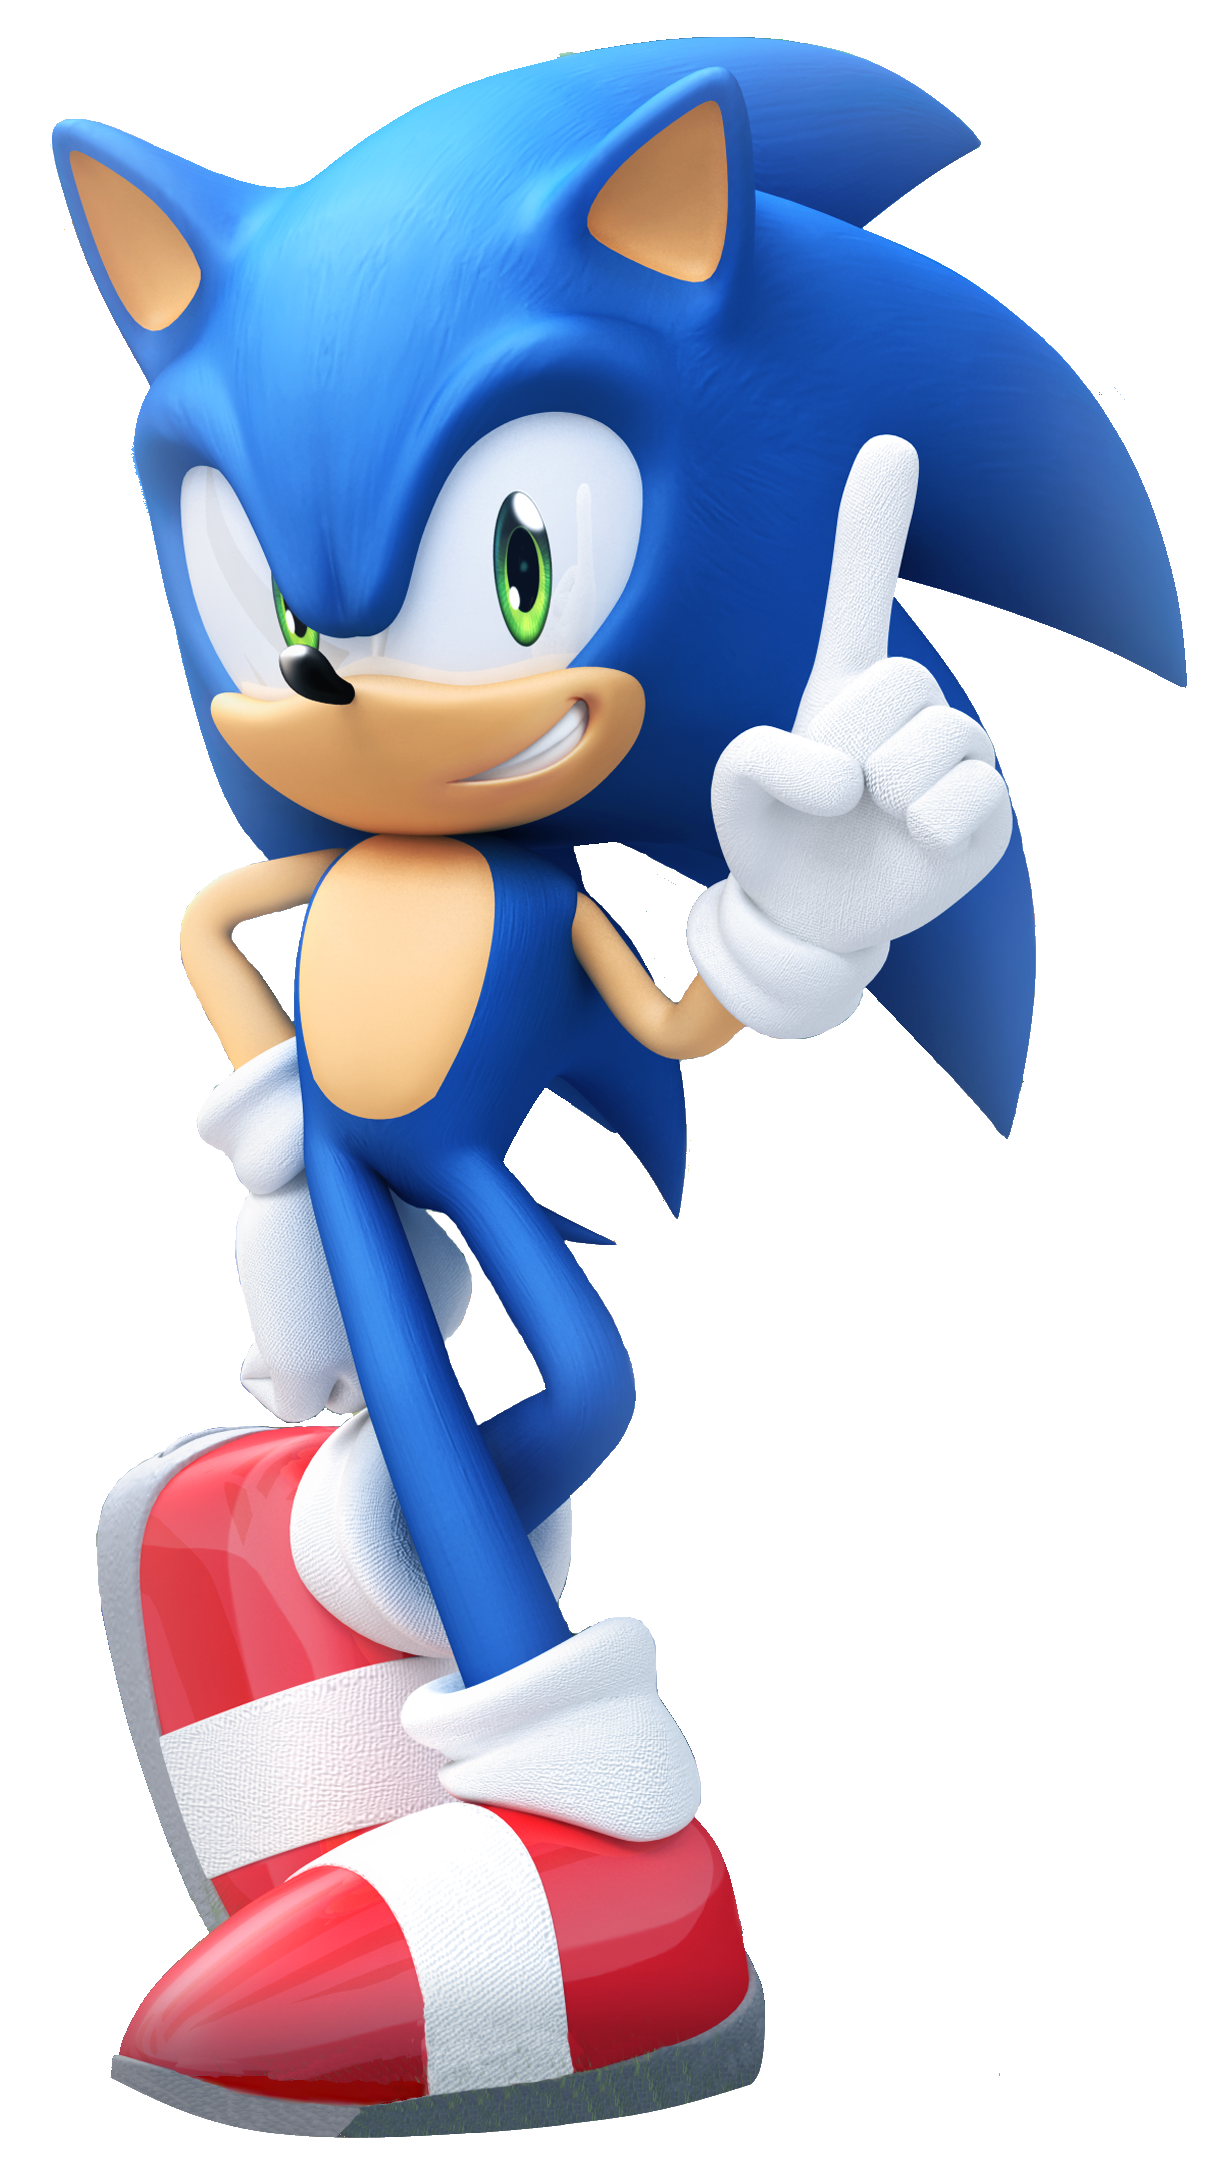 Image sonic the hedgehog. Knight clipart normans